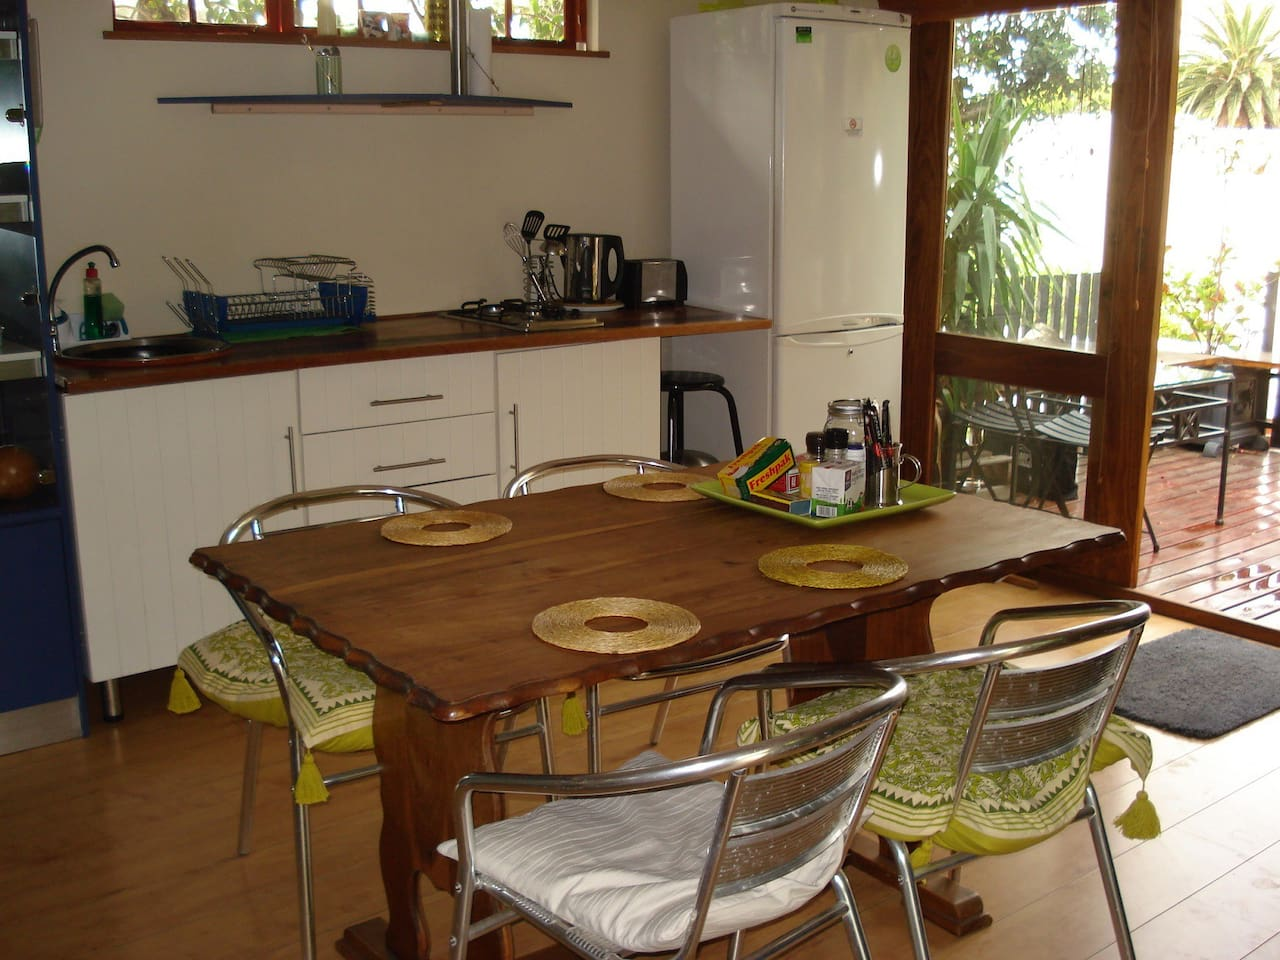 Kitchen area opening up to deck:  large fridge, table with 4 chairs, 2 plate gas hob and microwave